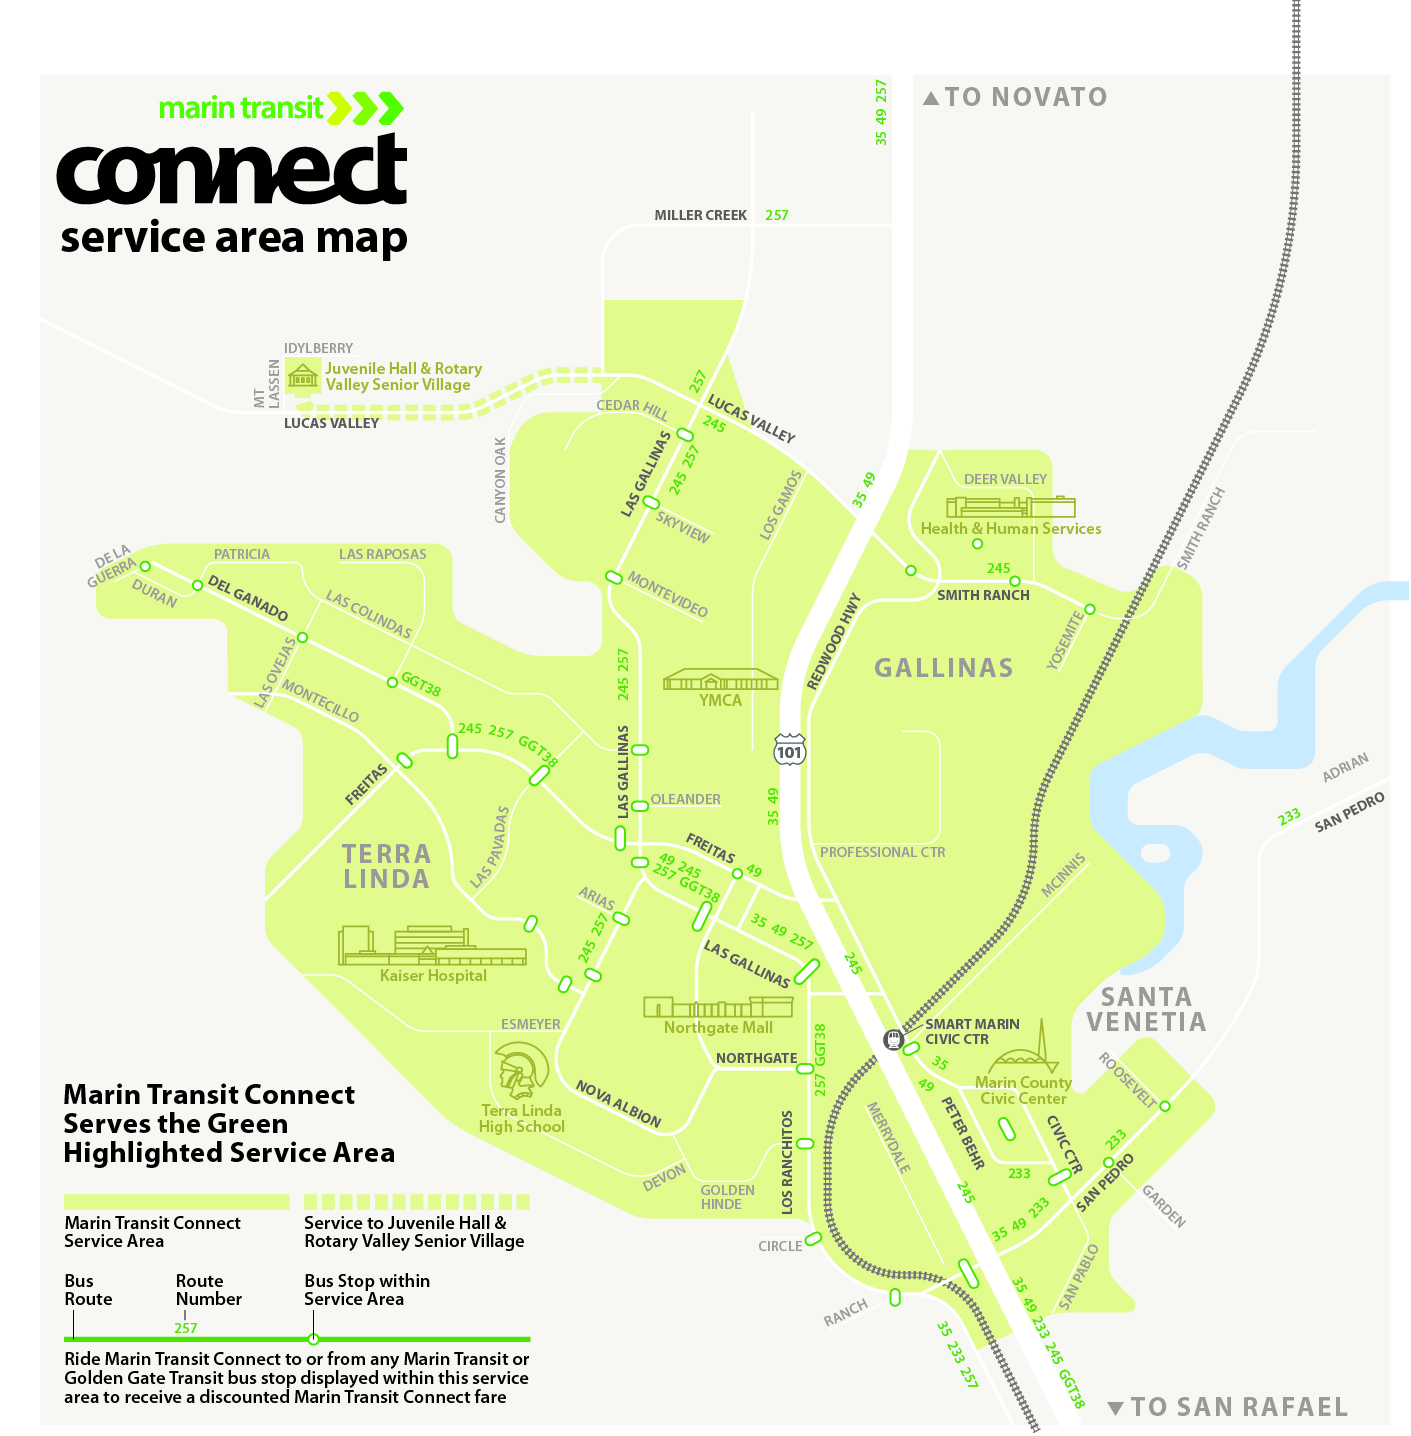 This map depicts the area served by Novato Dial-A-Ride. The area contains the entirety of Novato, as well as San Marin, Green Point, Bel Marin Keys, Hamilton, and Ignacio. The service area connects to local routes 35, 49, 71X, 251, 70, 101, 58 in Novato and 49, 251, and 257 in Hamilton.